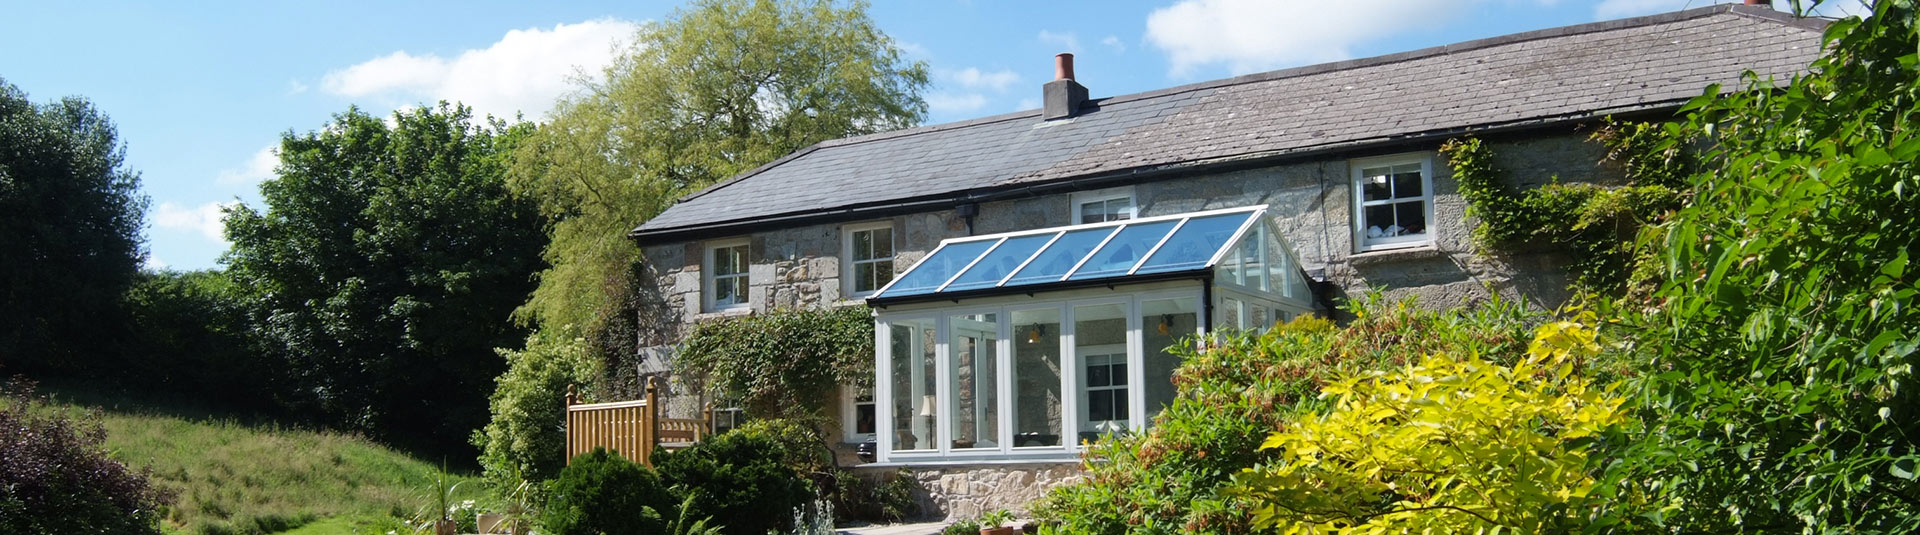 Fine Cornwall Cottages Sleeping 10 Self Catering Cottages For Beutiful Home Inspiration Ommitmahrainfo